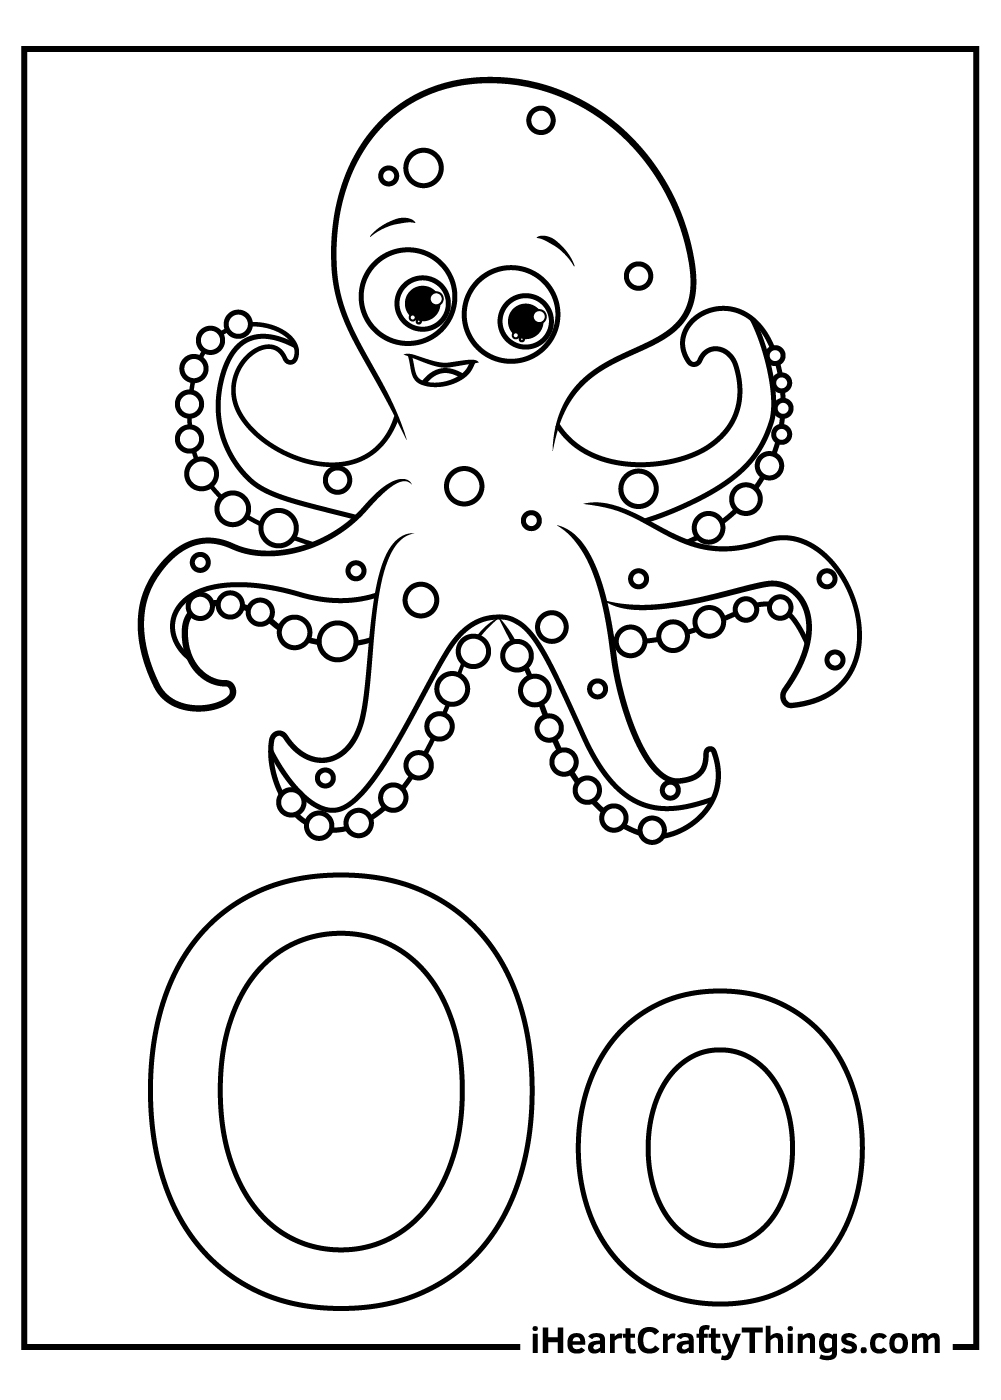 o is for octopus coloring for toddlers coloring pages free